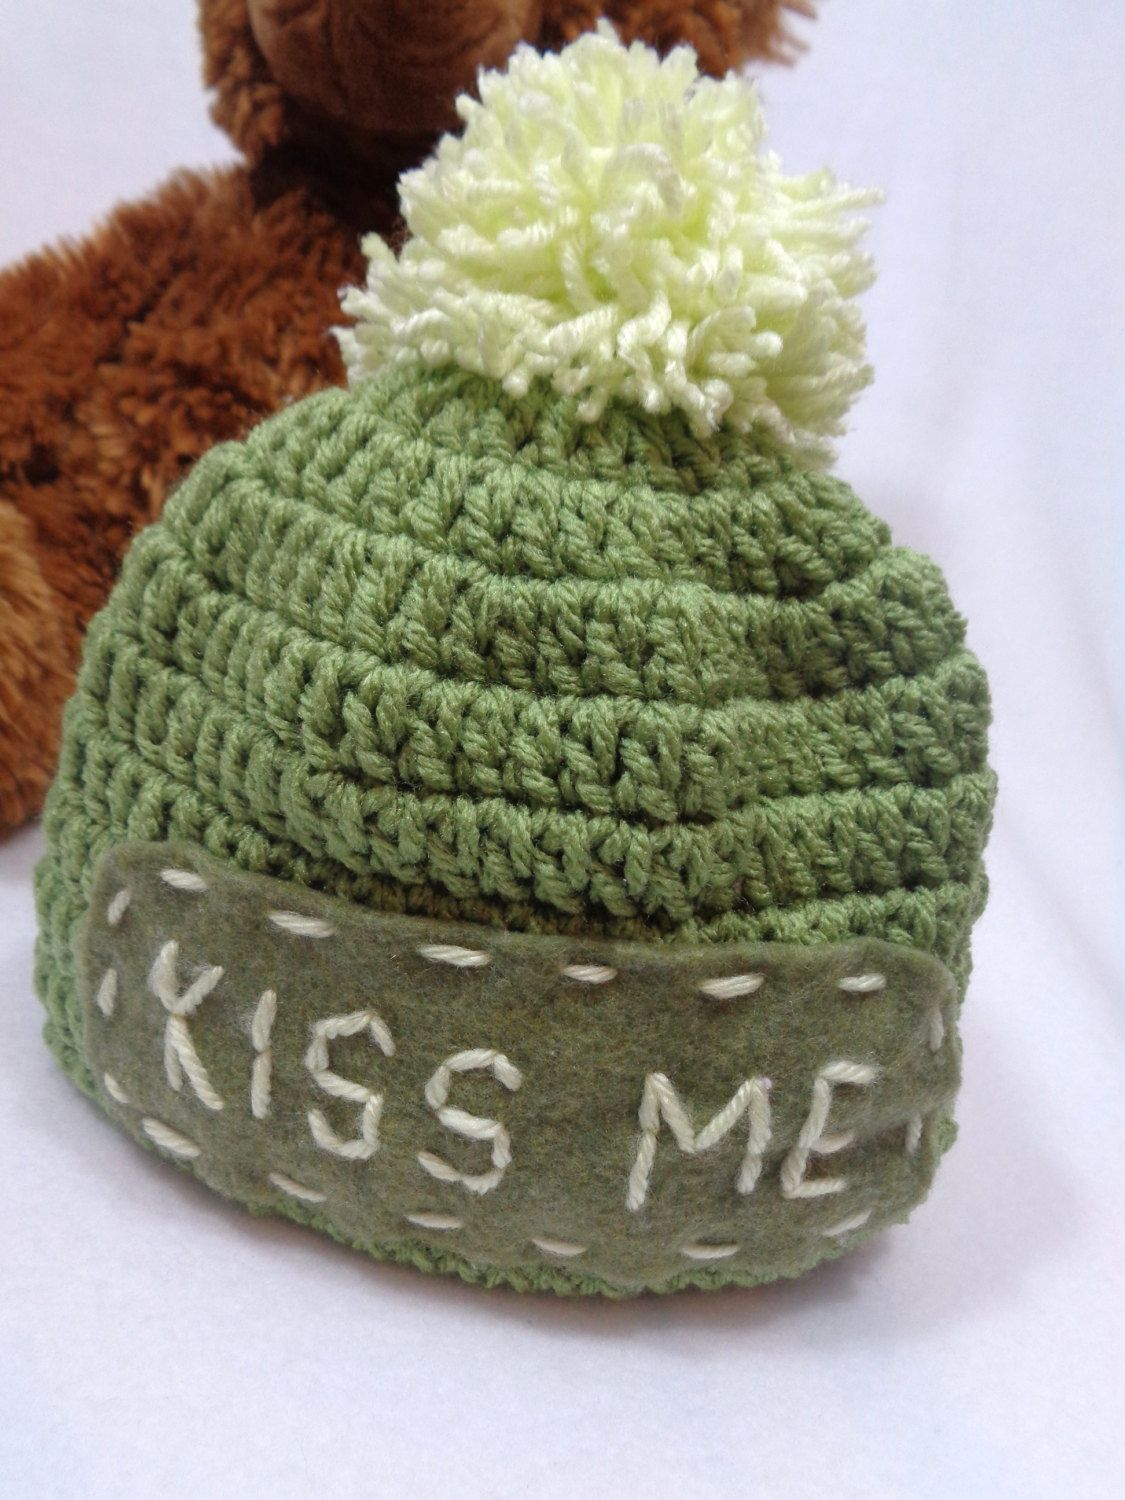 0ae6e7a01db5c4 St. Patrick's Day Hat, Olive Green Kiss Me Cap, Irish Pom Pom Hat, MADE TO  ORDER Gift for Irish Baby, Present for St. Patty's Day Baby by ...